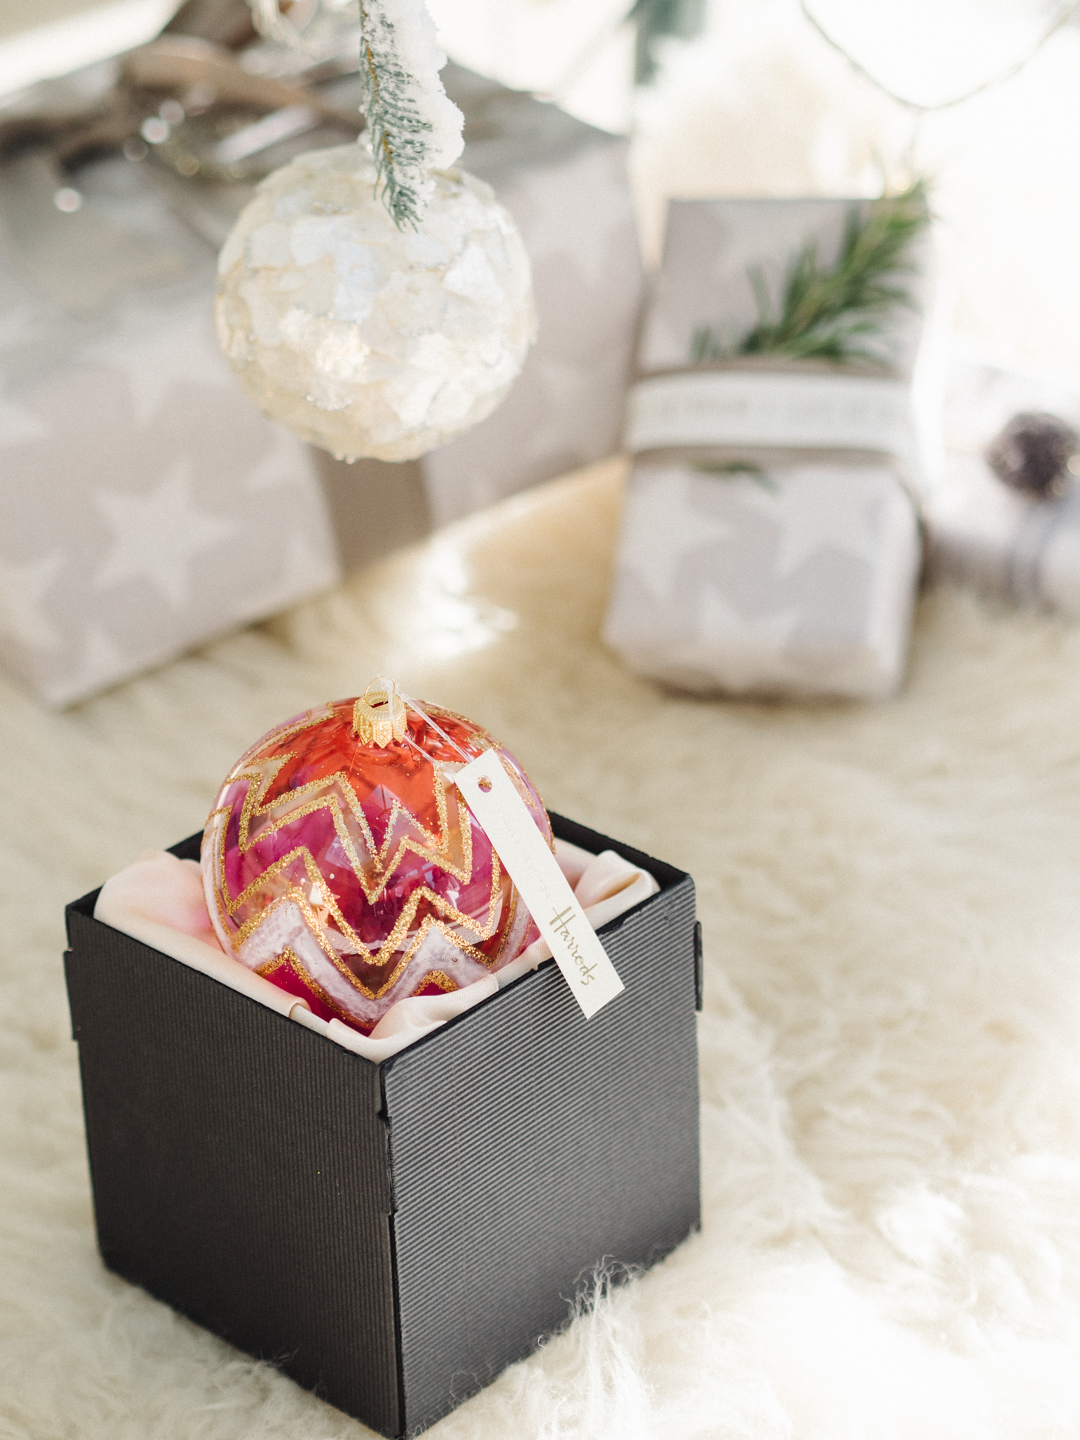 New Christmas traditions - Christmas decorations